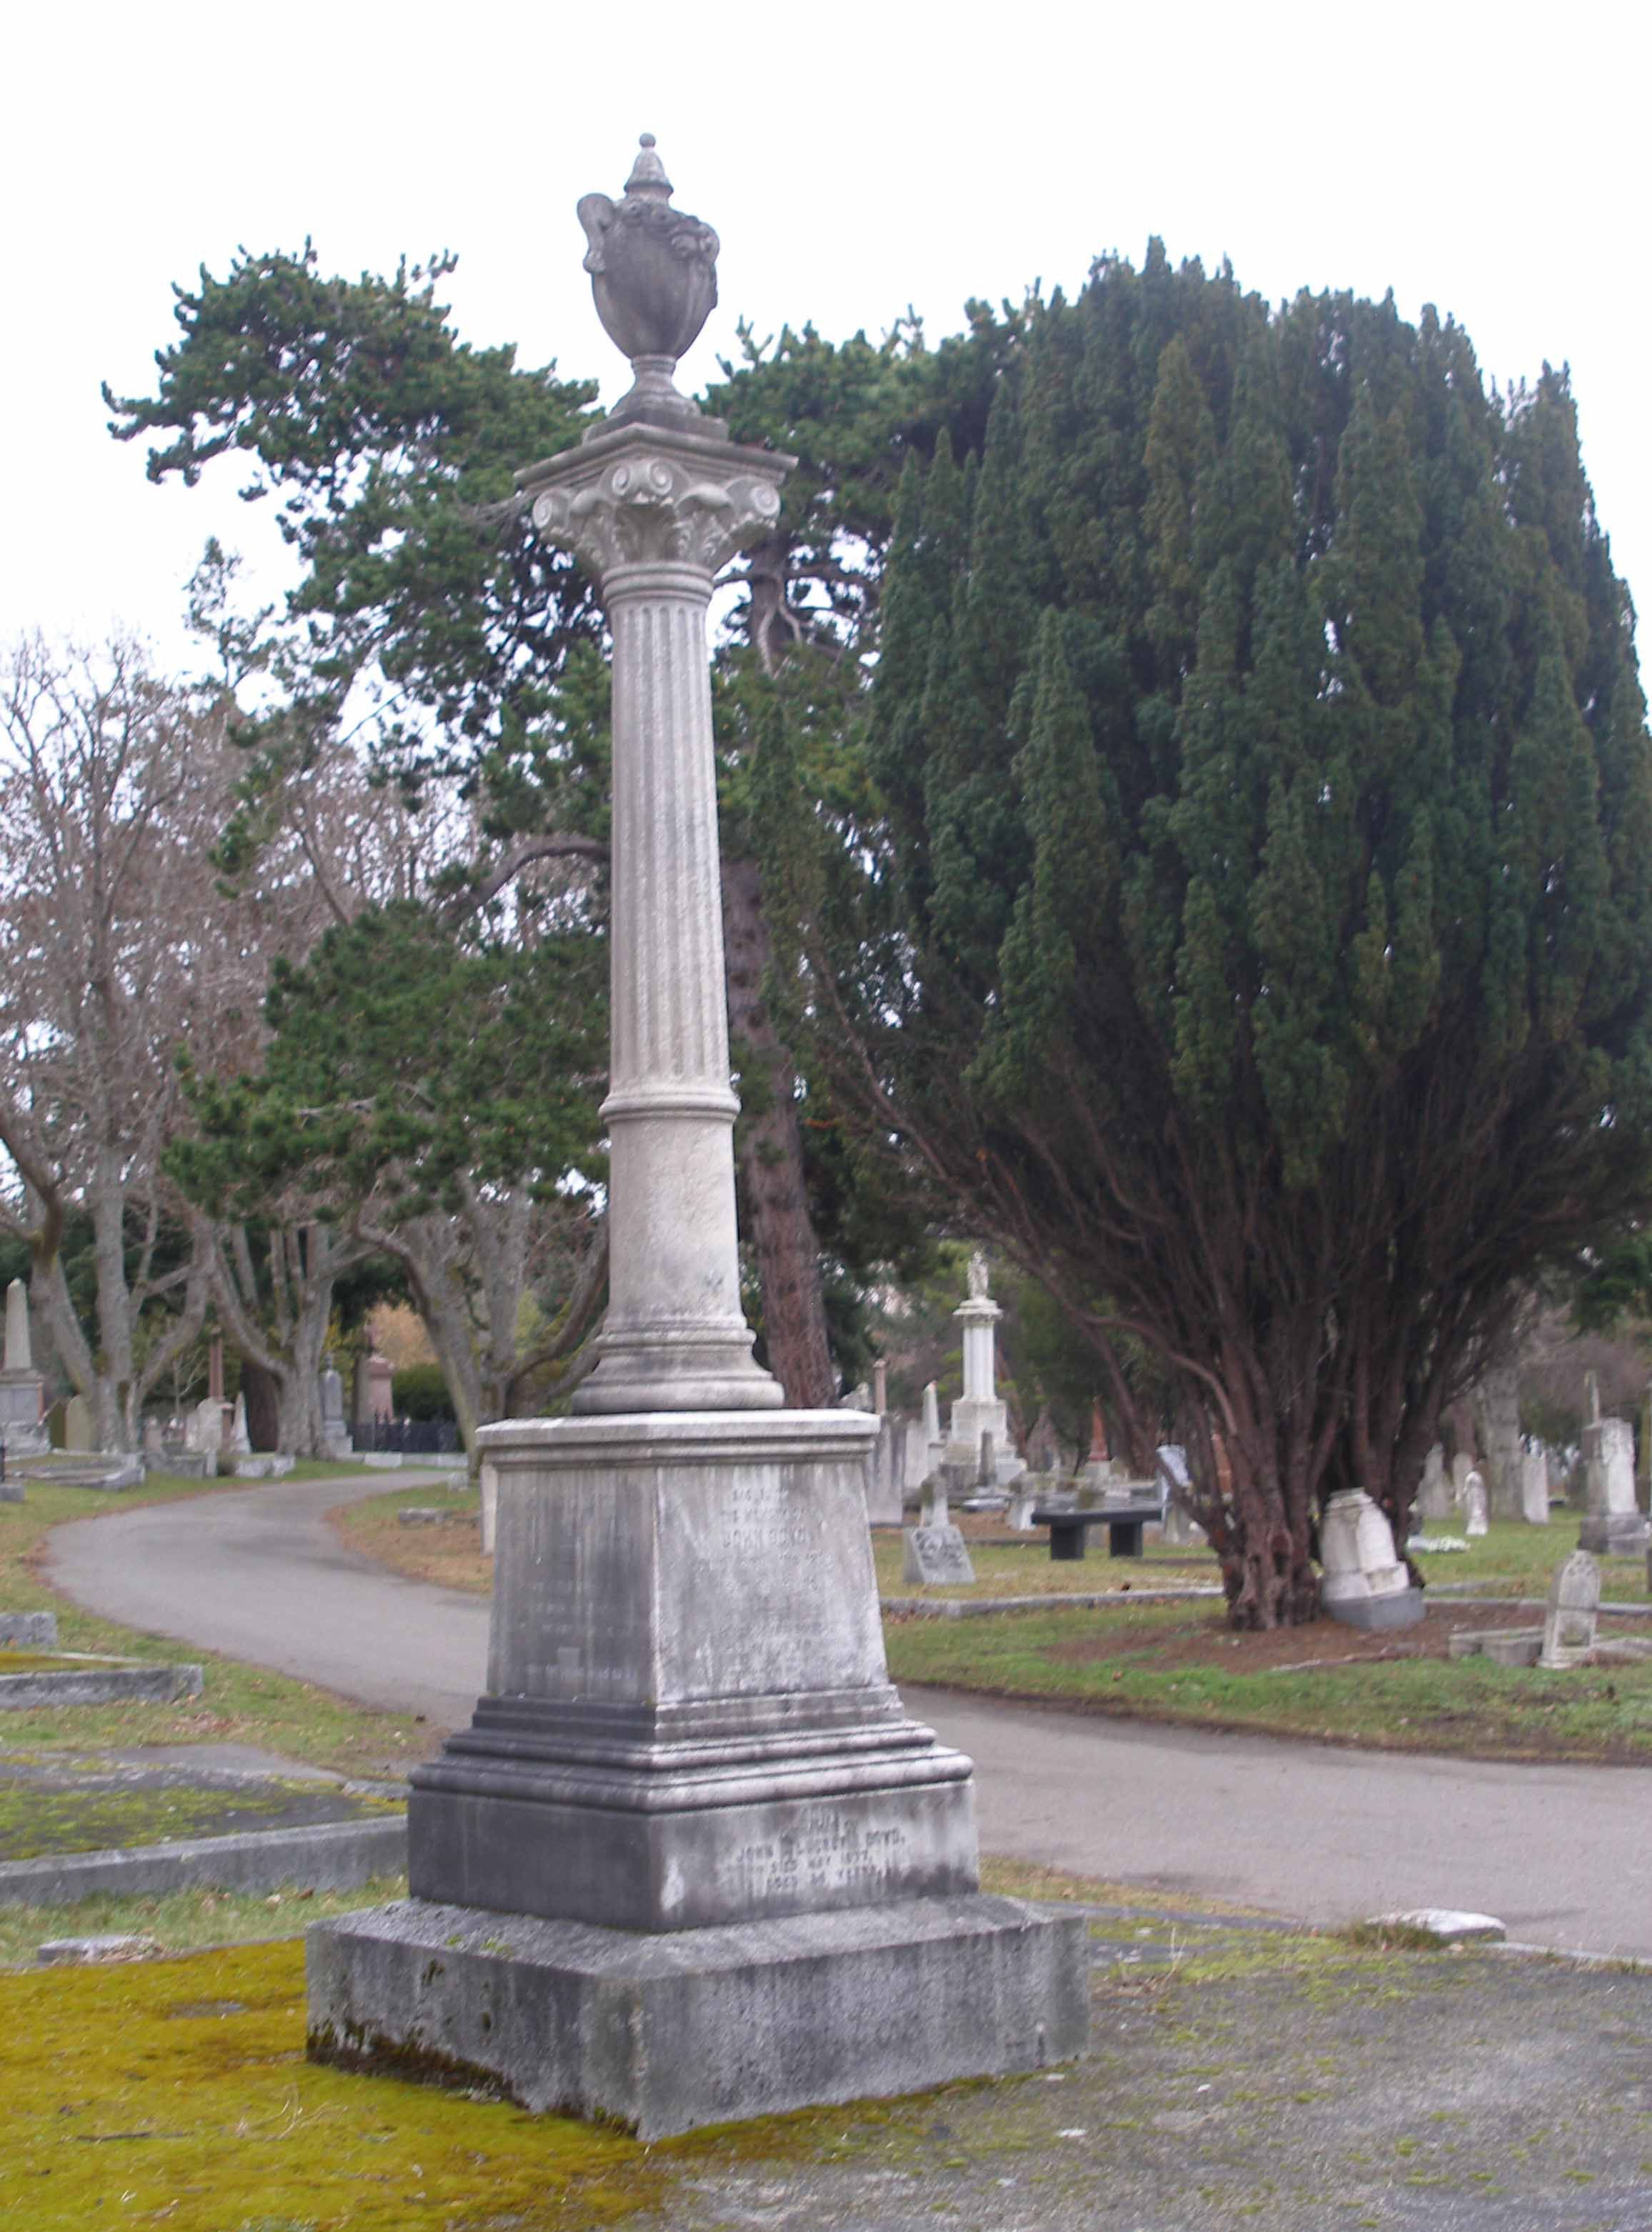 John Boyd tomb, Ross Bay Cemetery